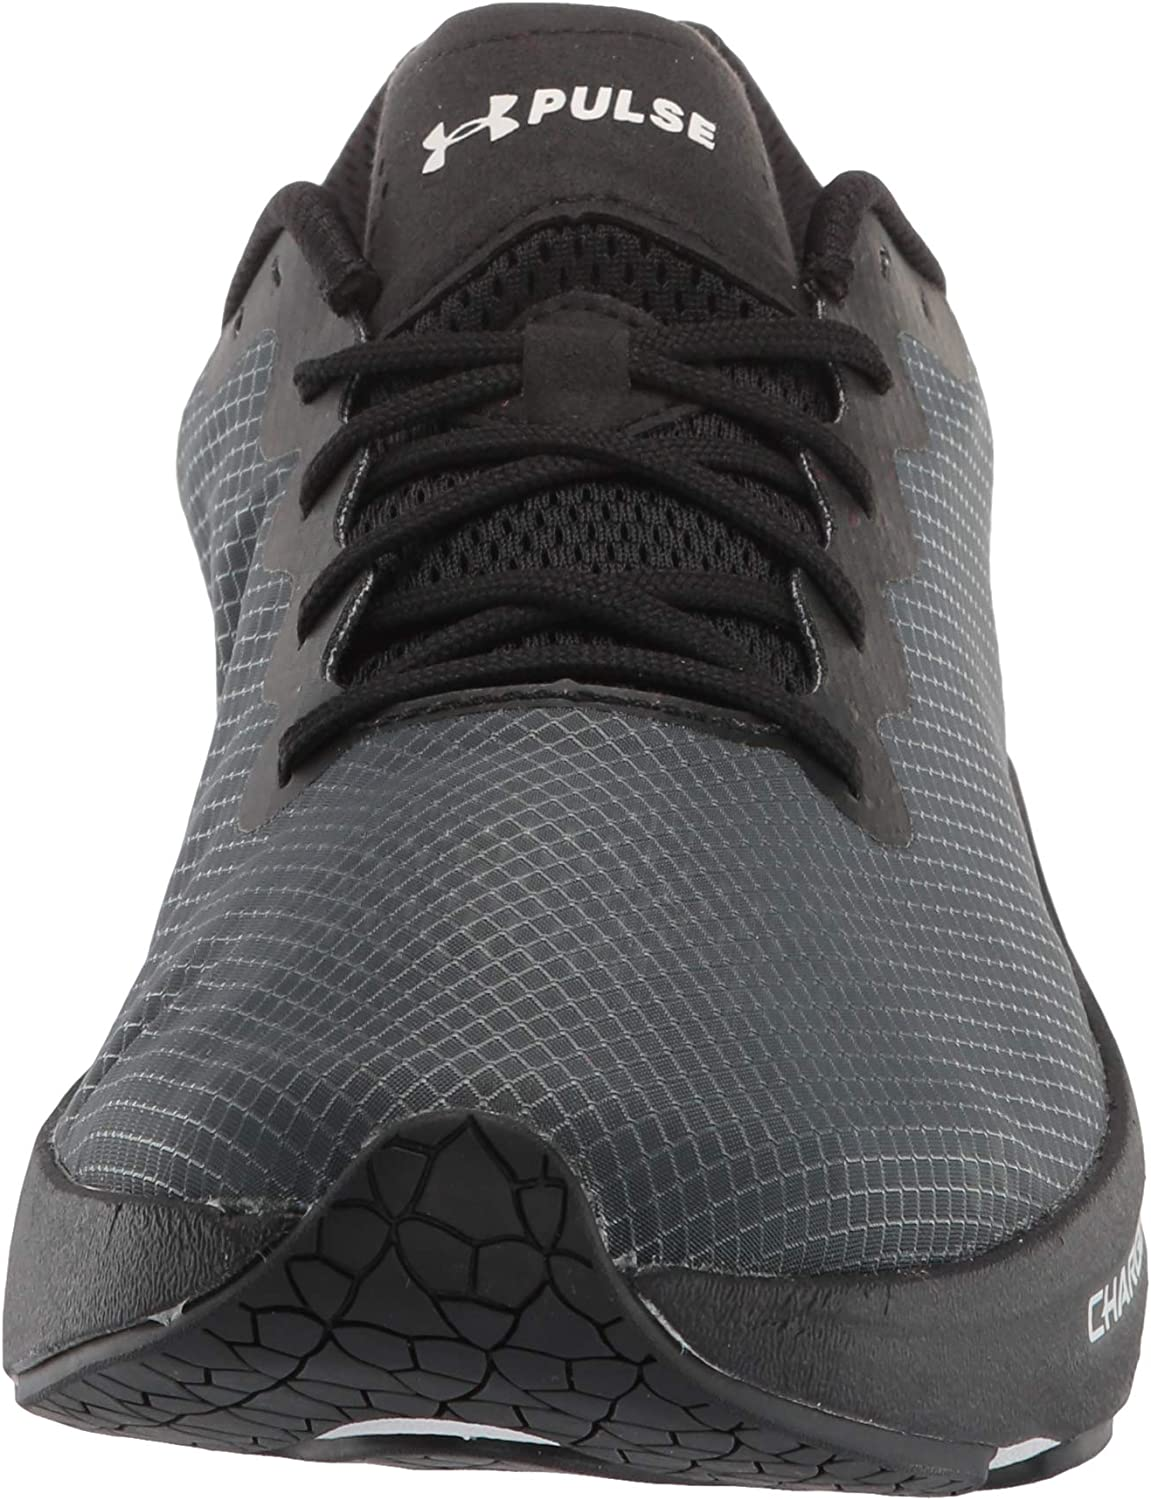 Under Armour Mens Charged Pulse Running Shoe